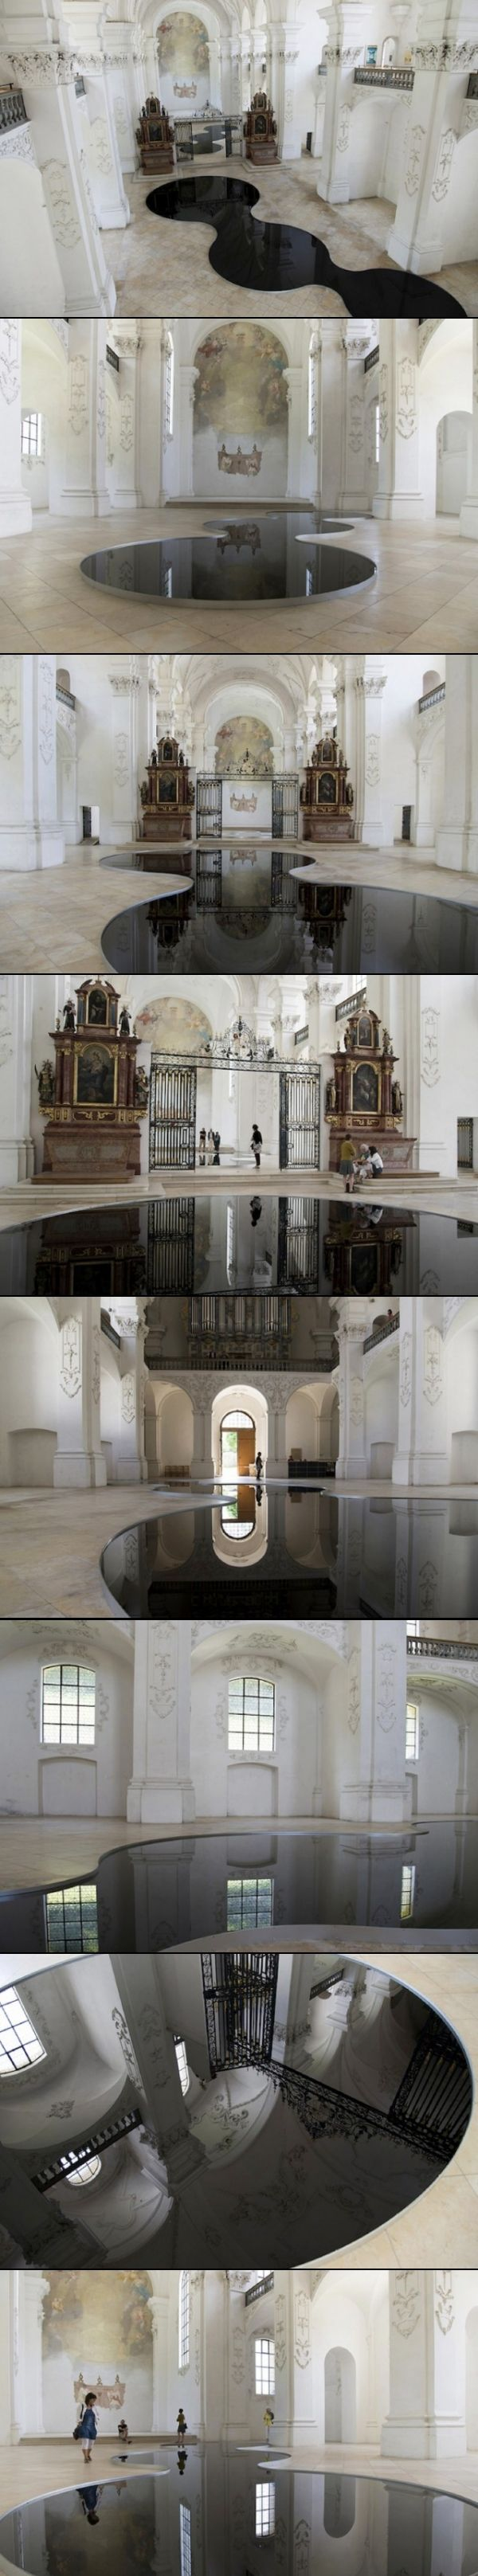 "Installation of Romain Crelier located in Bellelay, Switzerland, 'La mise en Abyme"" is composed of large basins filled with used motor oil in which the image of spectators is reflected in the abbey grandiose baroque decor. A very interesting diversion work"